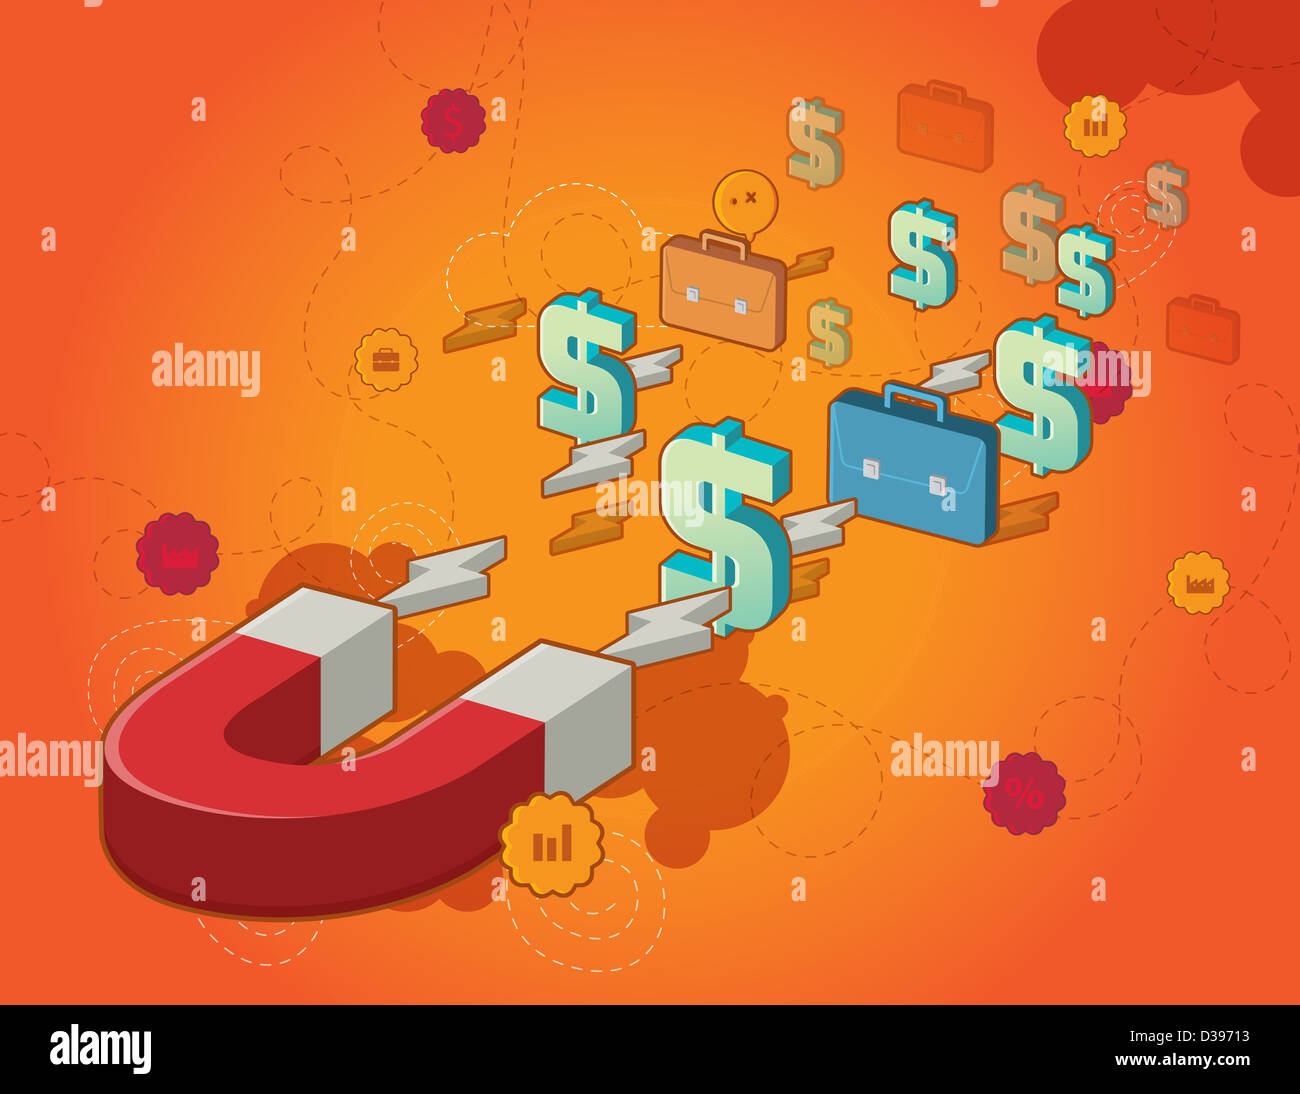 Illustration of horseshoe magnet accumulating dollar signs and briefcases depicting concept of business attraction - Stock Image